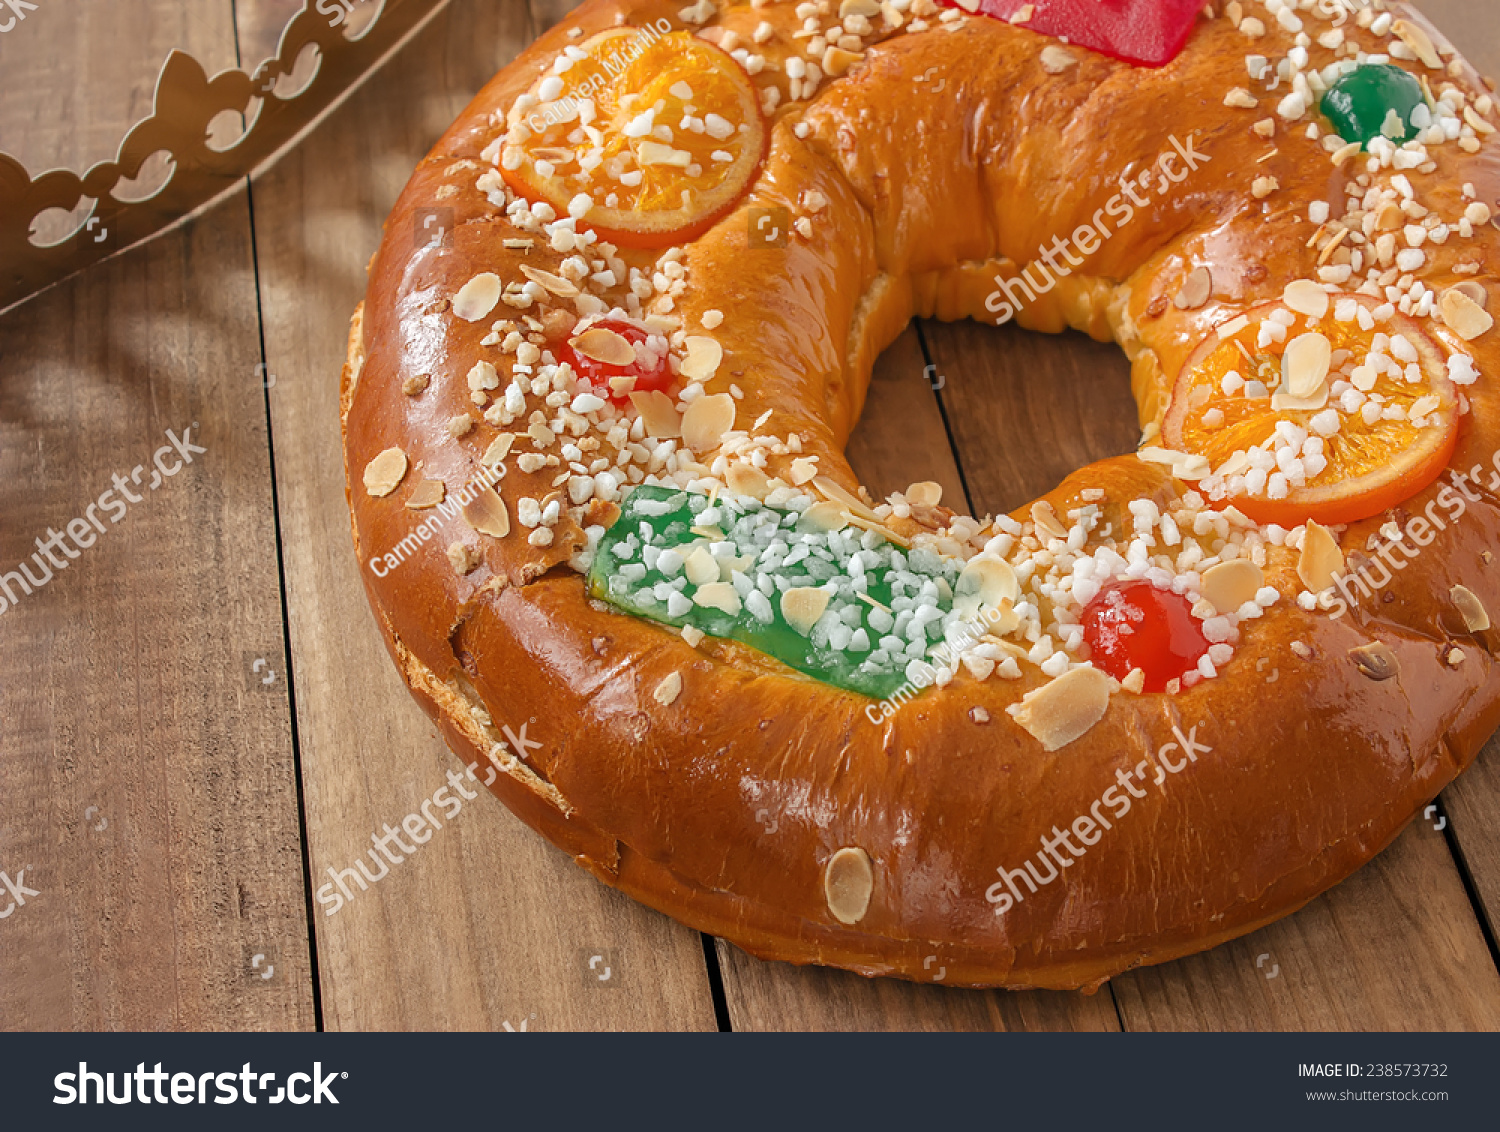 Roscon De Reyes Three Kings Cake Stock Photo 238573732